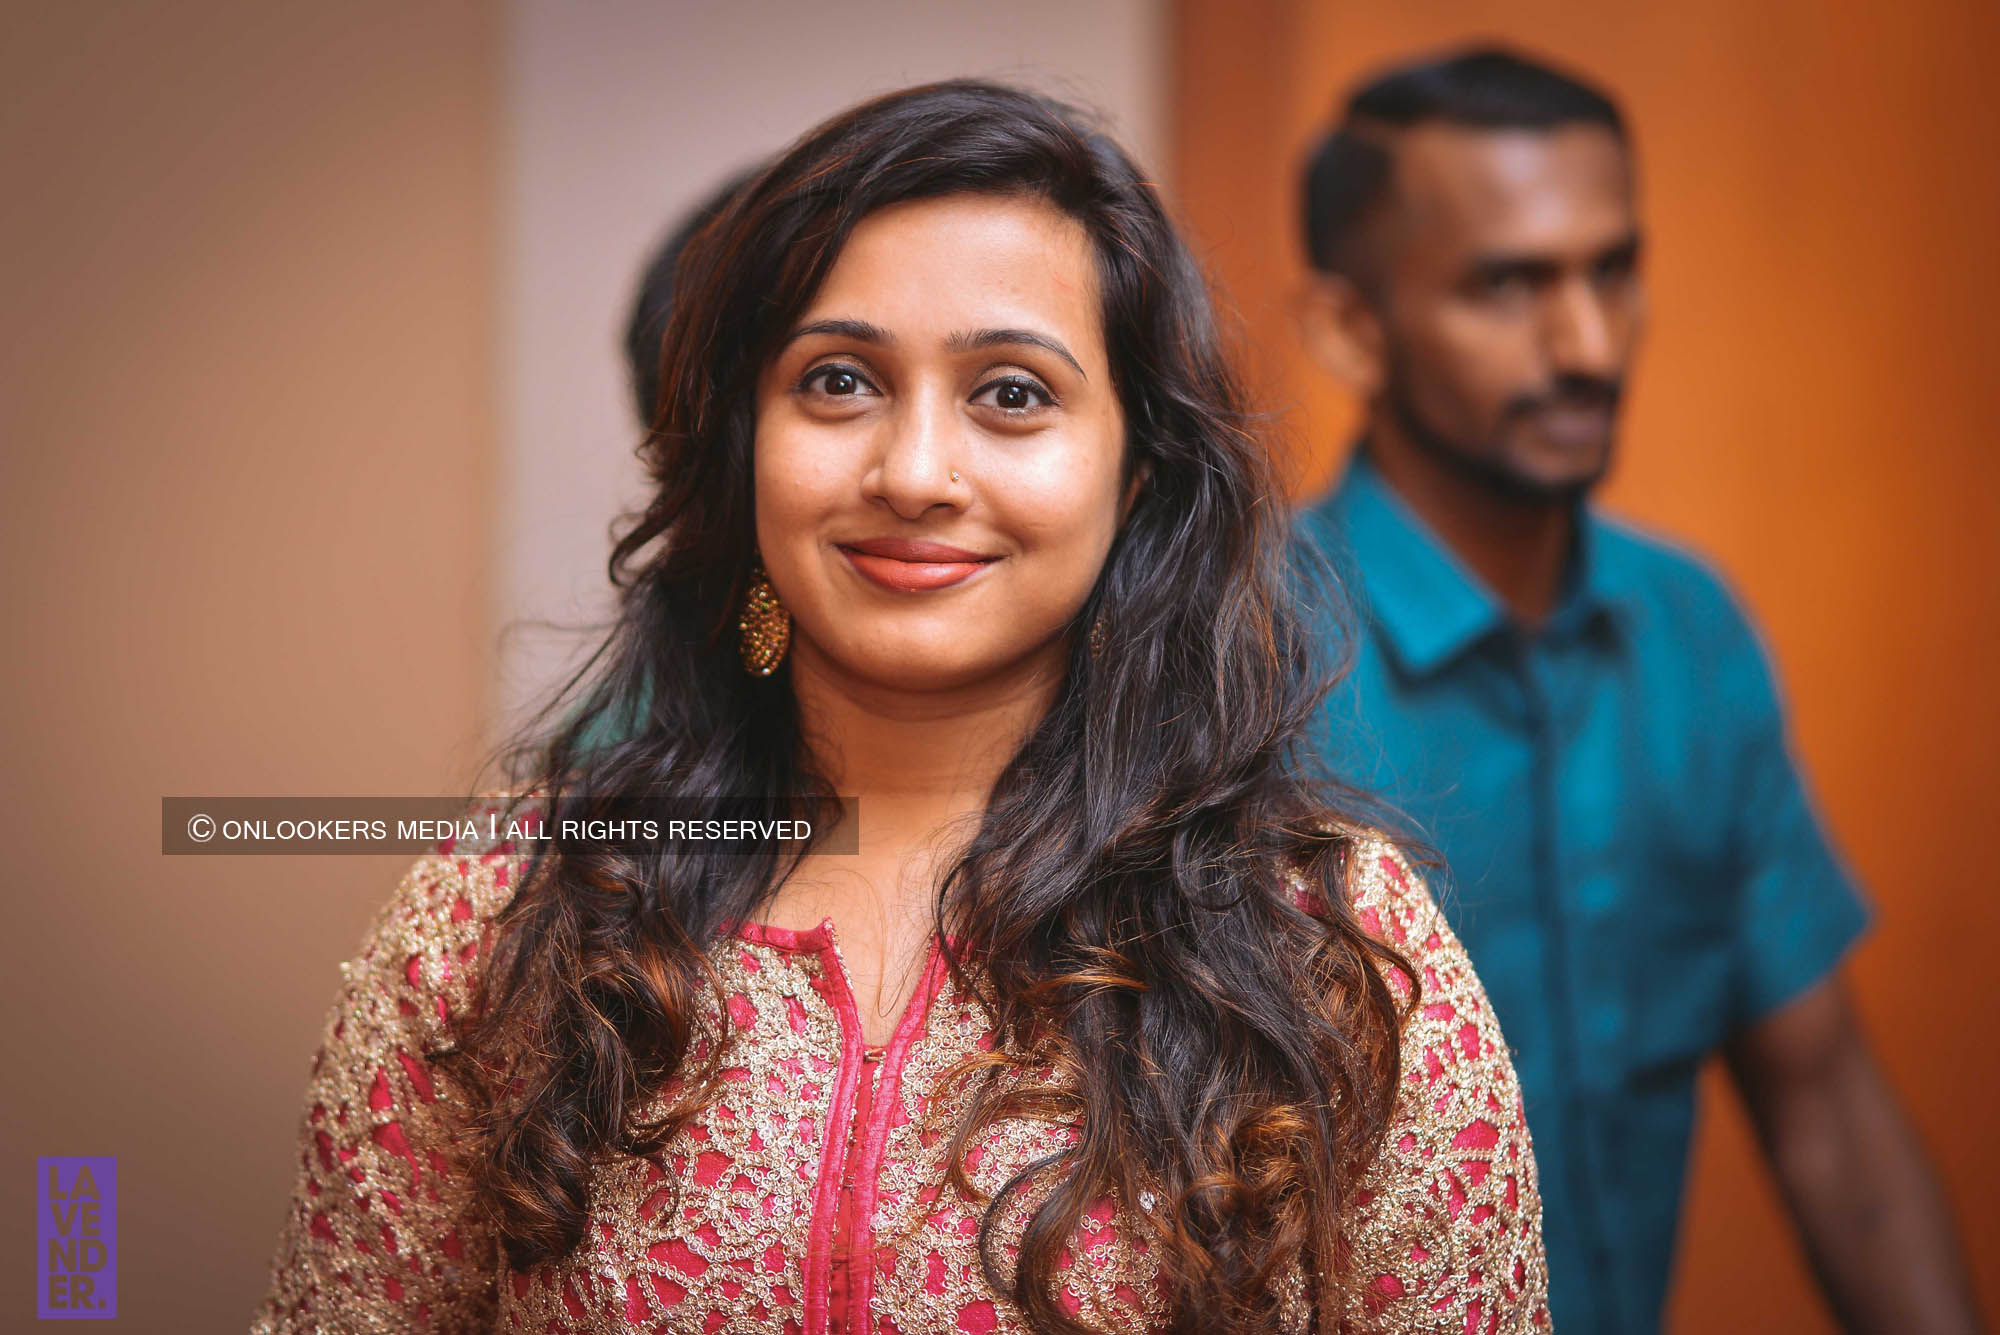 http://onlookersmedia.in/wp-content/uploads/2018/05/sreejith-vijay-wedding-stills-images-91.jpg